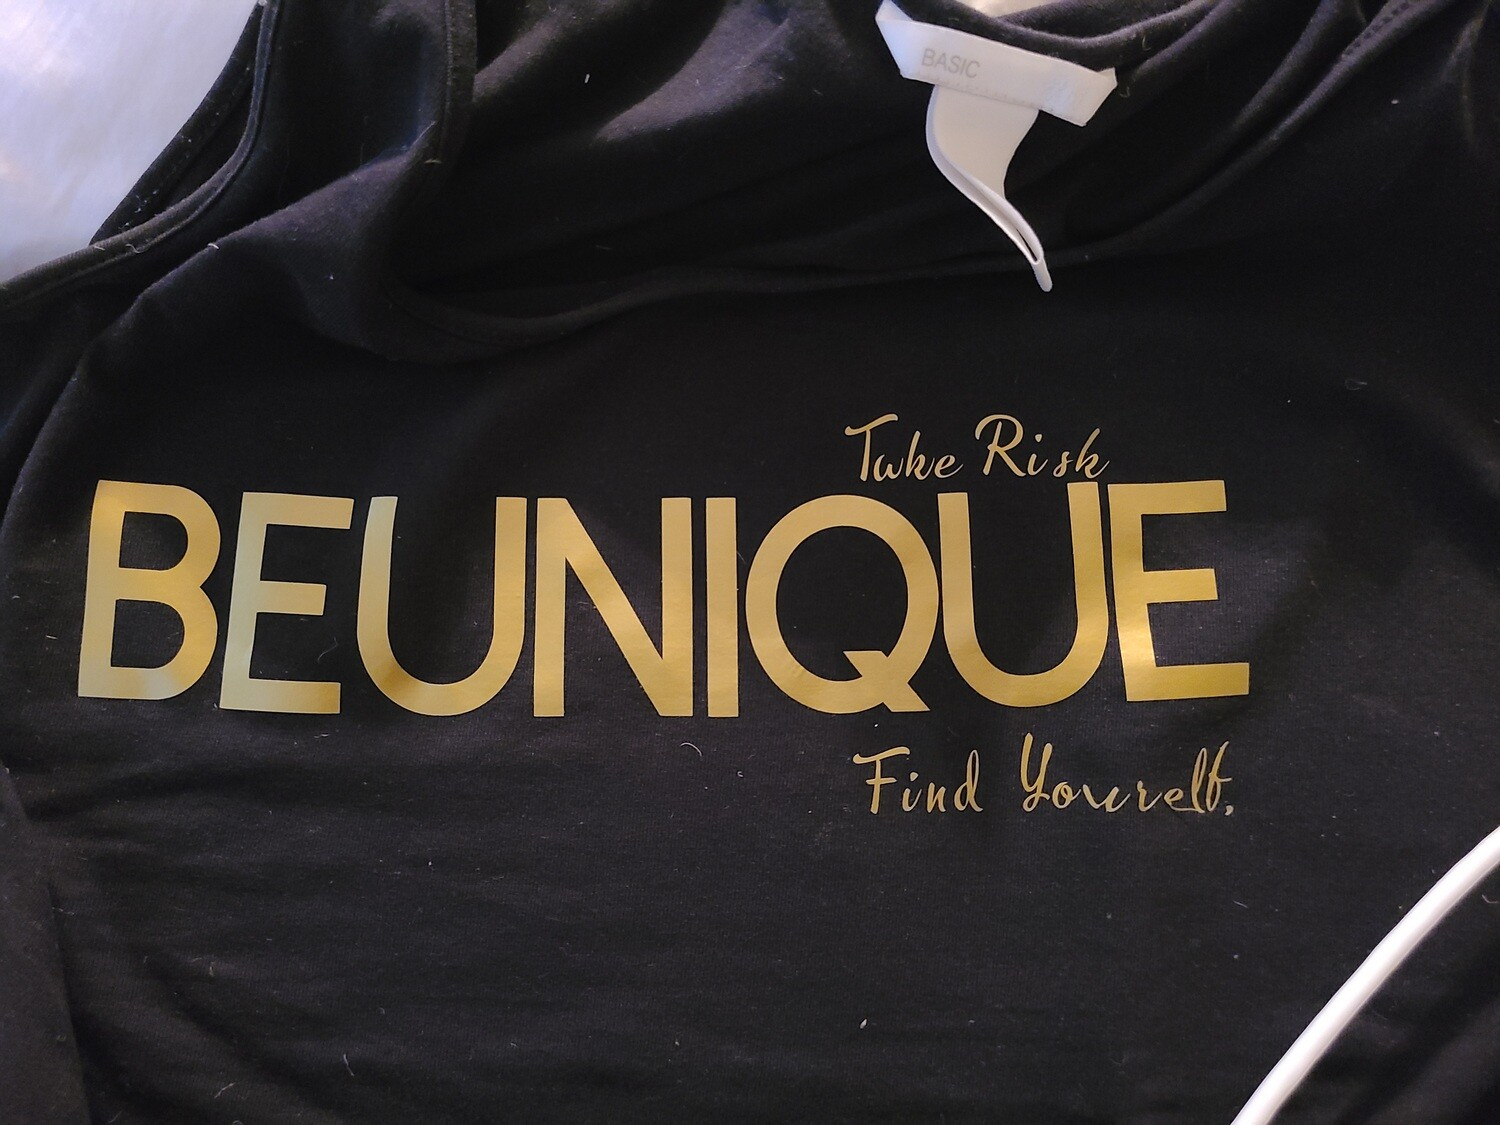 MERCH T-Shirt BEUNIQUE, TAKE RISK, FIND YOURSELF